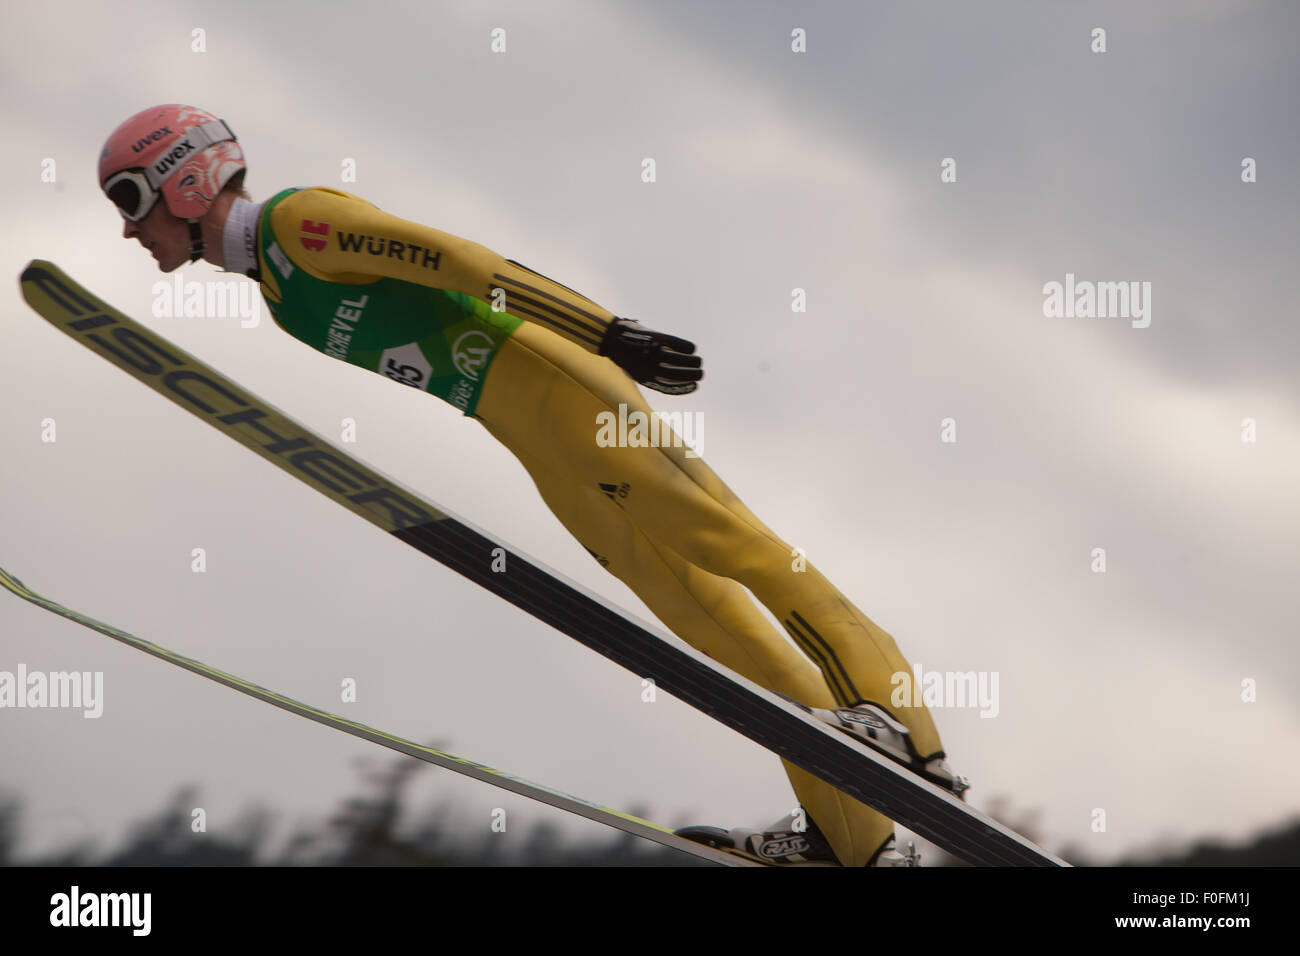 Courchevel, France. 13th Aug, 2015. Ski Jumping World Cup, Grand Prix Men, 5th Grand Prix Competition, Courchevel - Stock Image